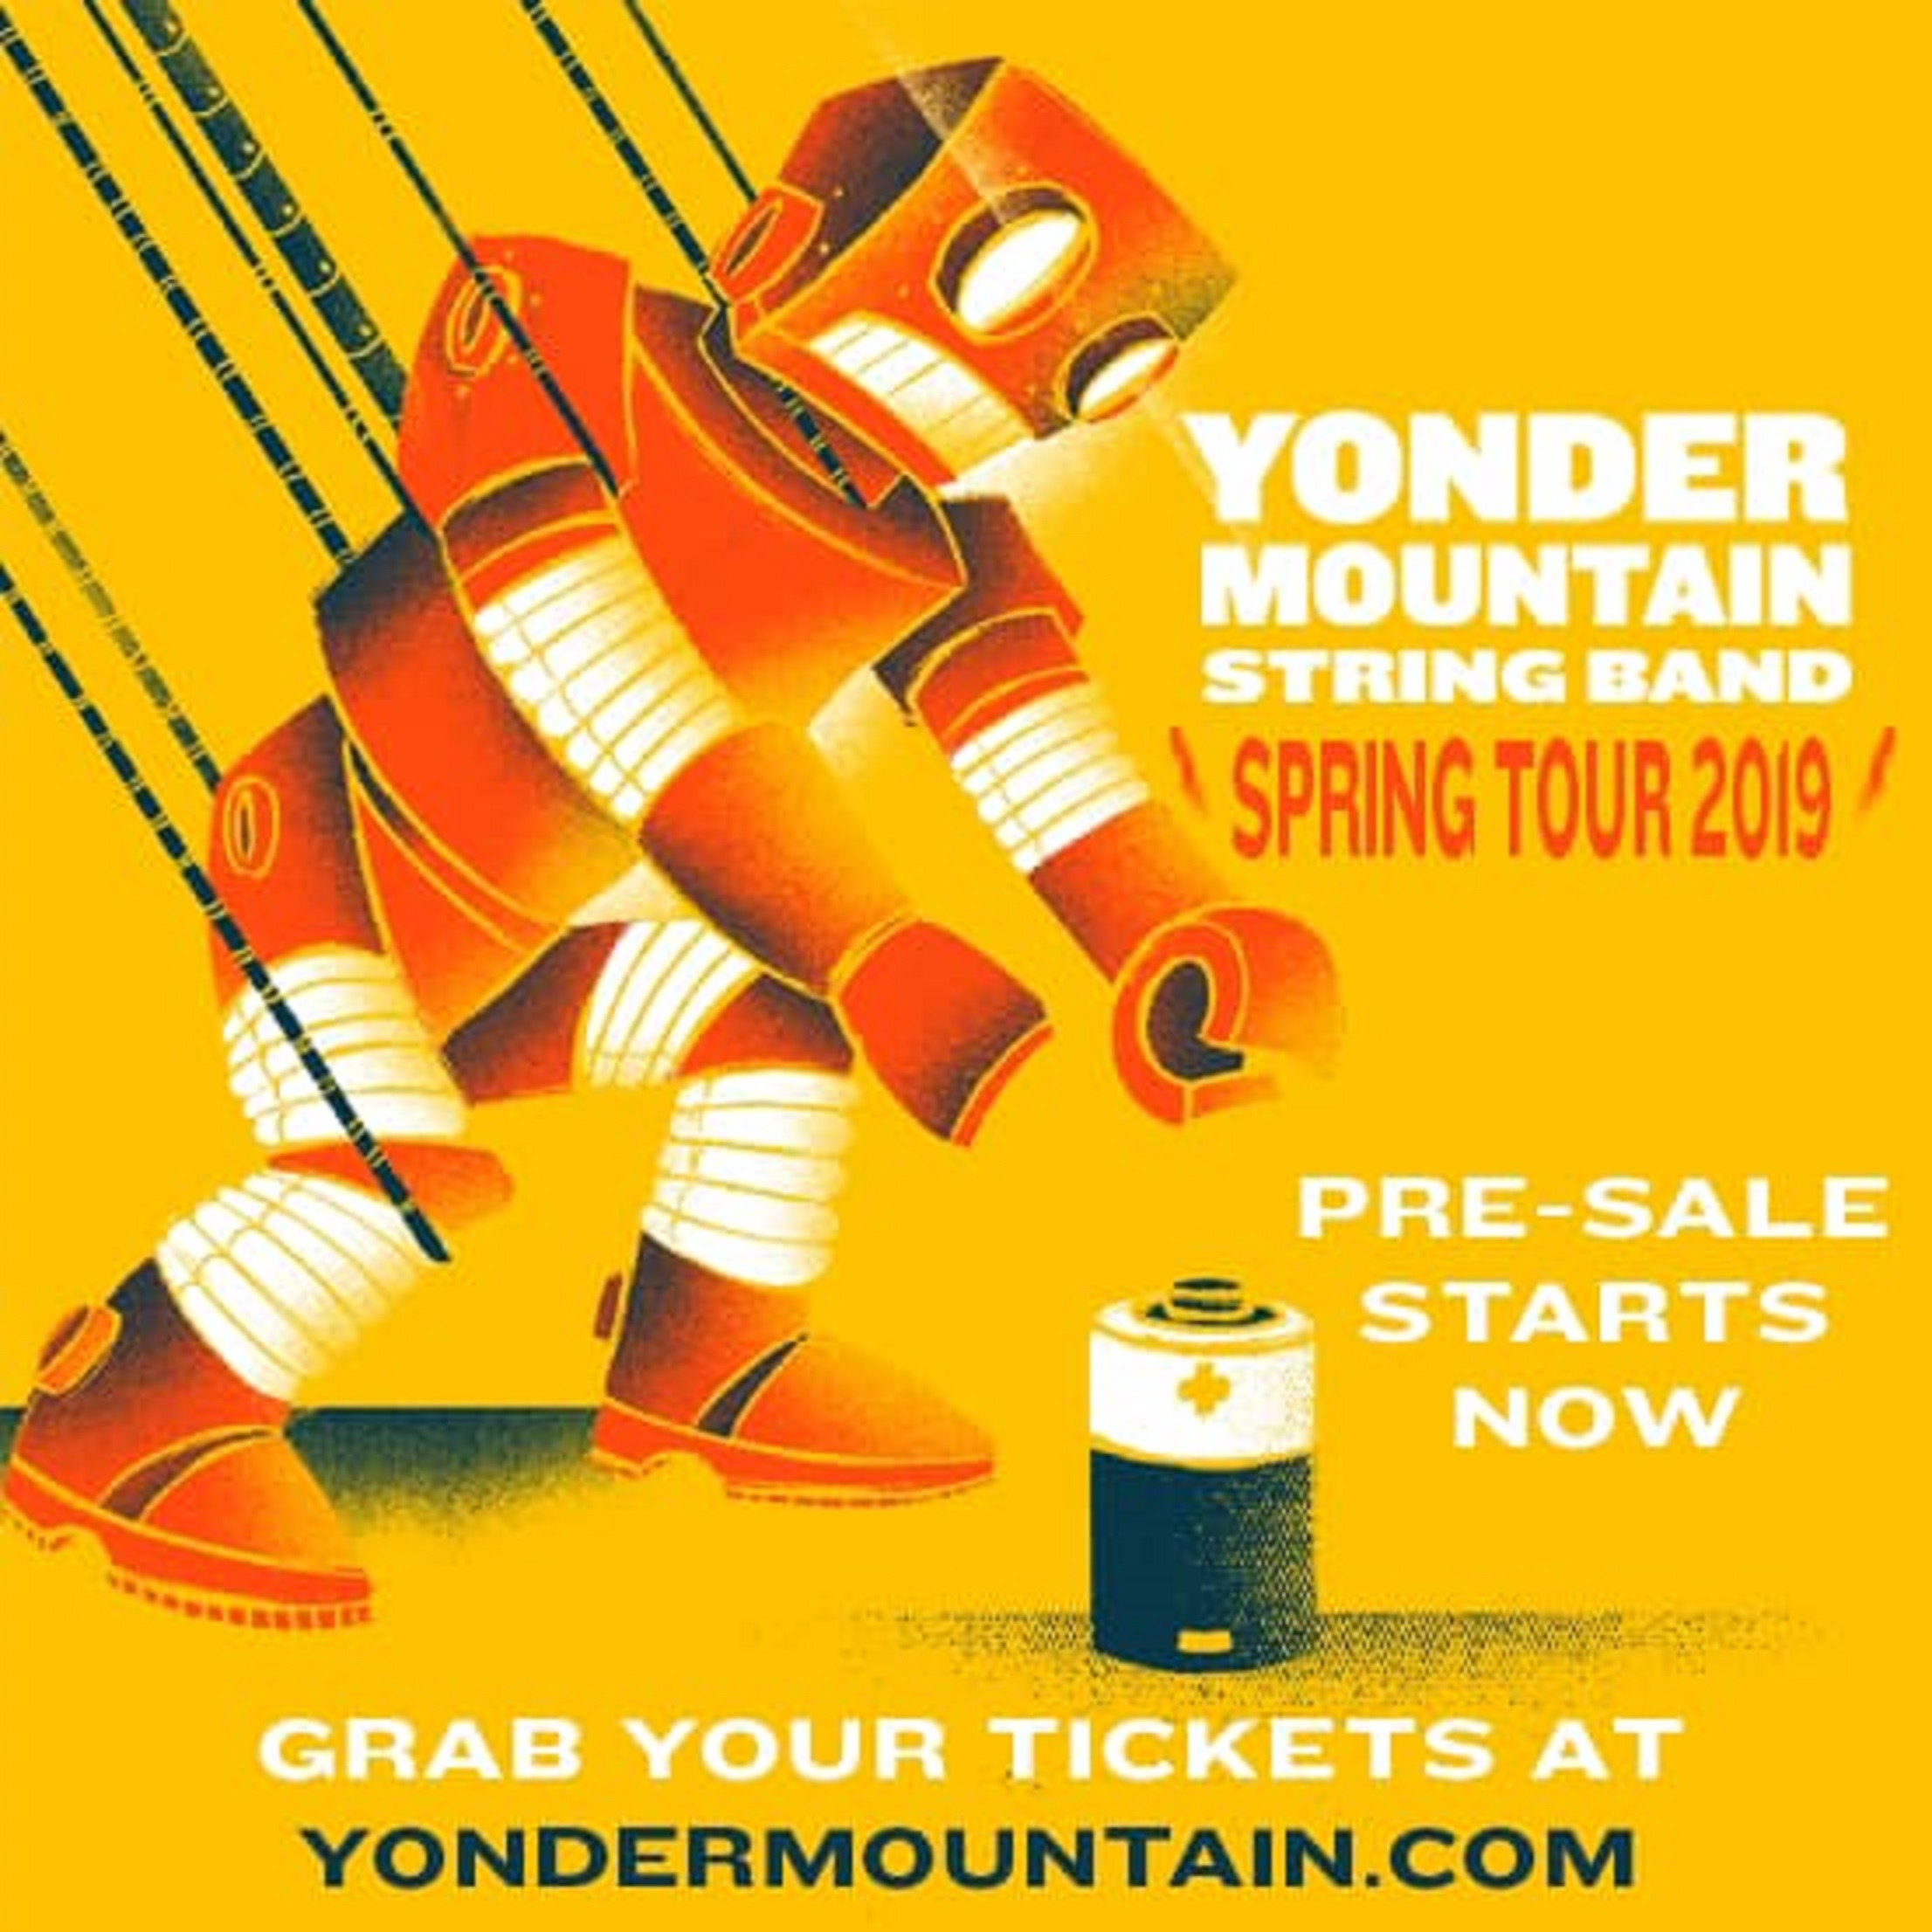 Yonder Mountain String Band Spring Tour 2019